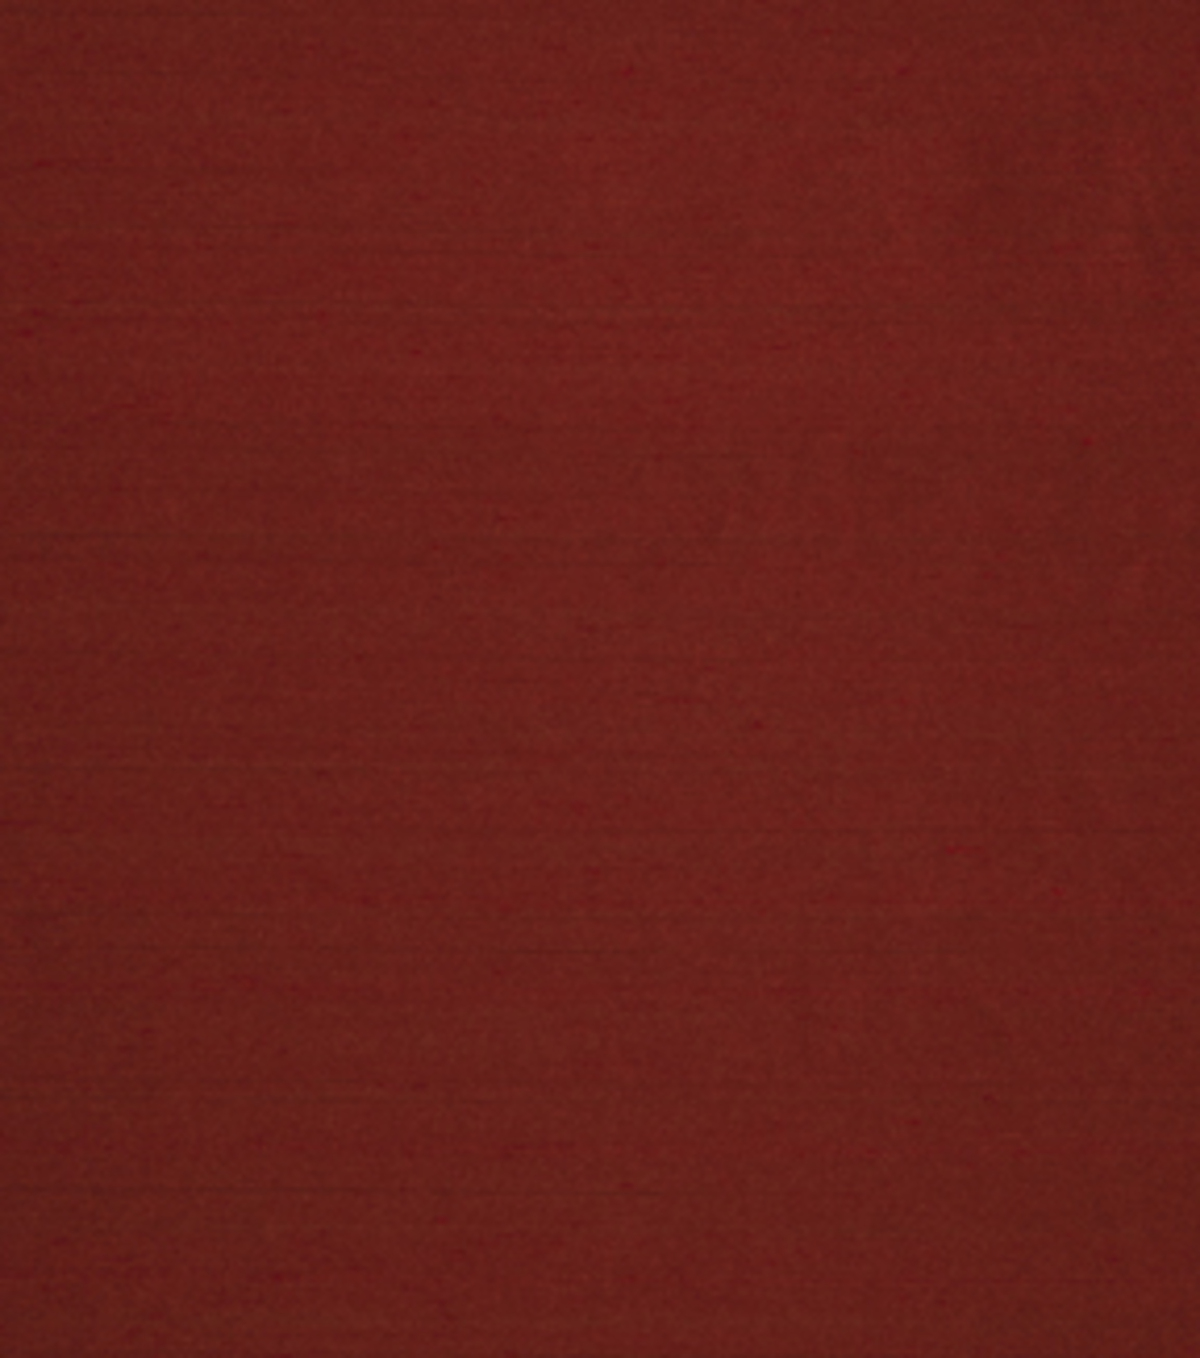 Home Decor 8\u0022x8\u0022 Fabric Swatch-Signature Series Bravo Ruby